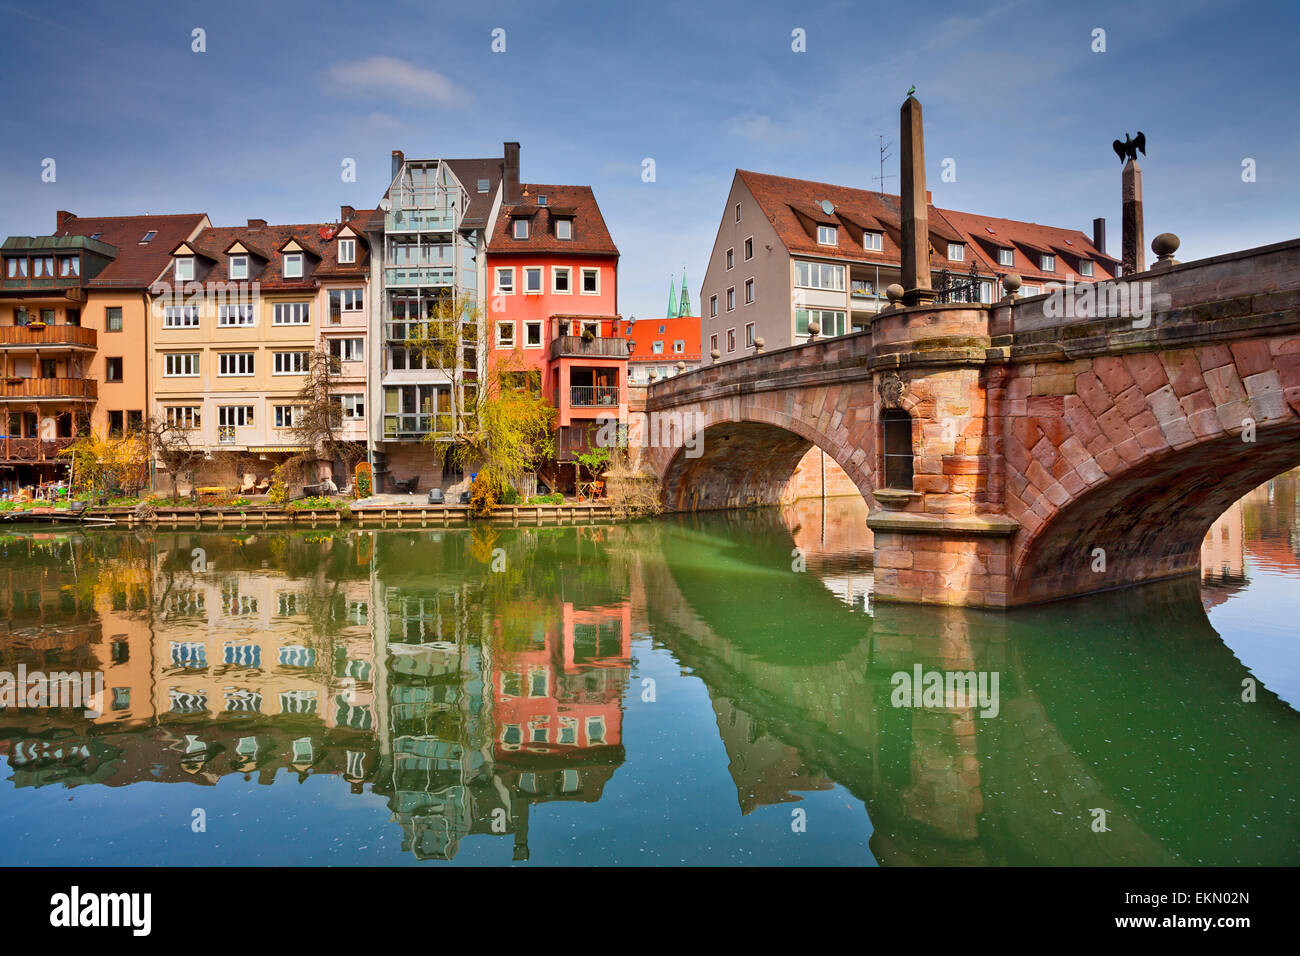 Nuremberg. Image of the Nuremberg old town during sunny spring day. - Stock Image